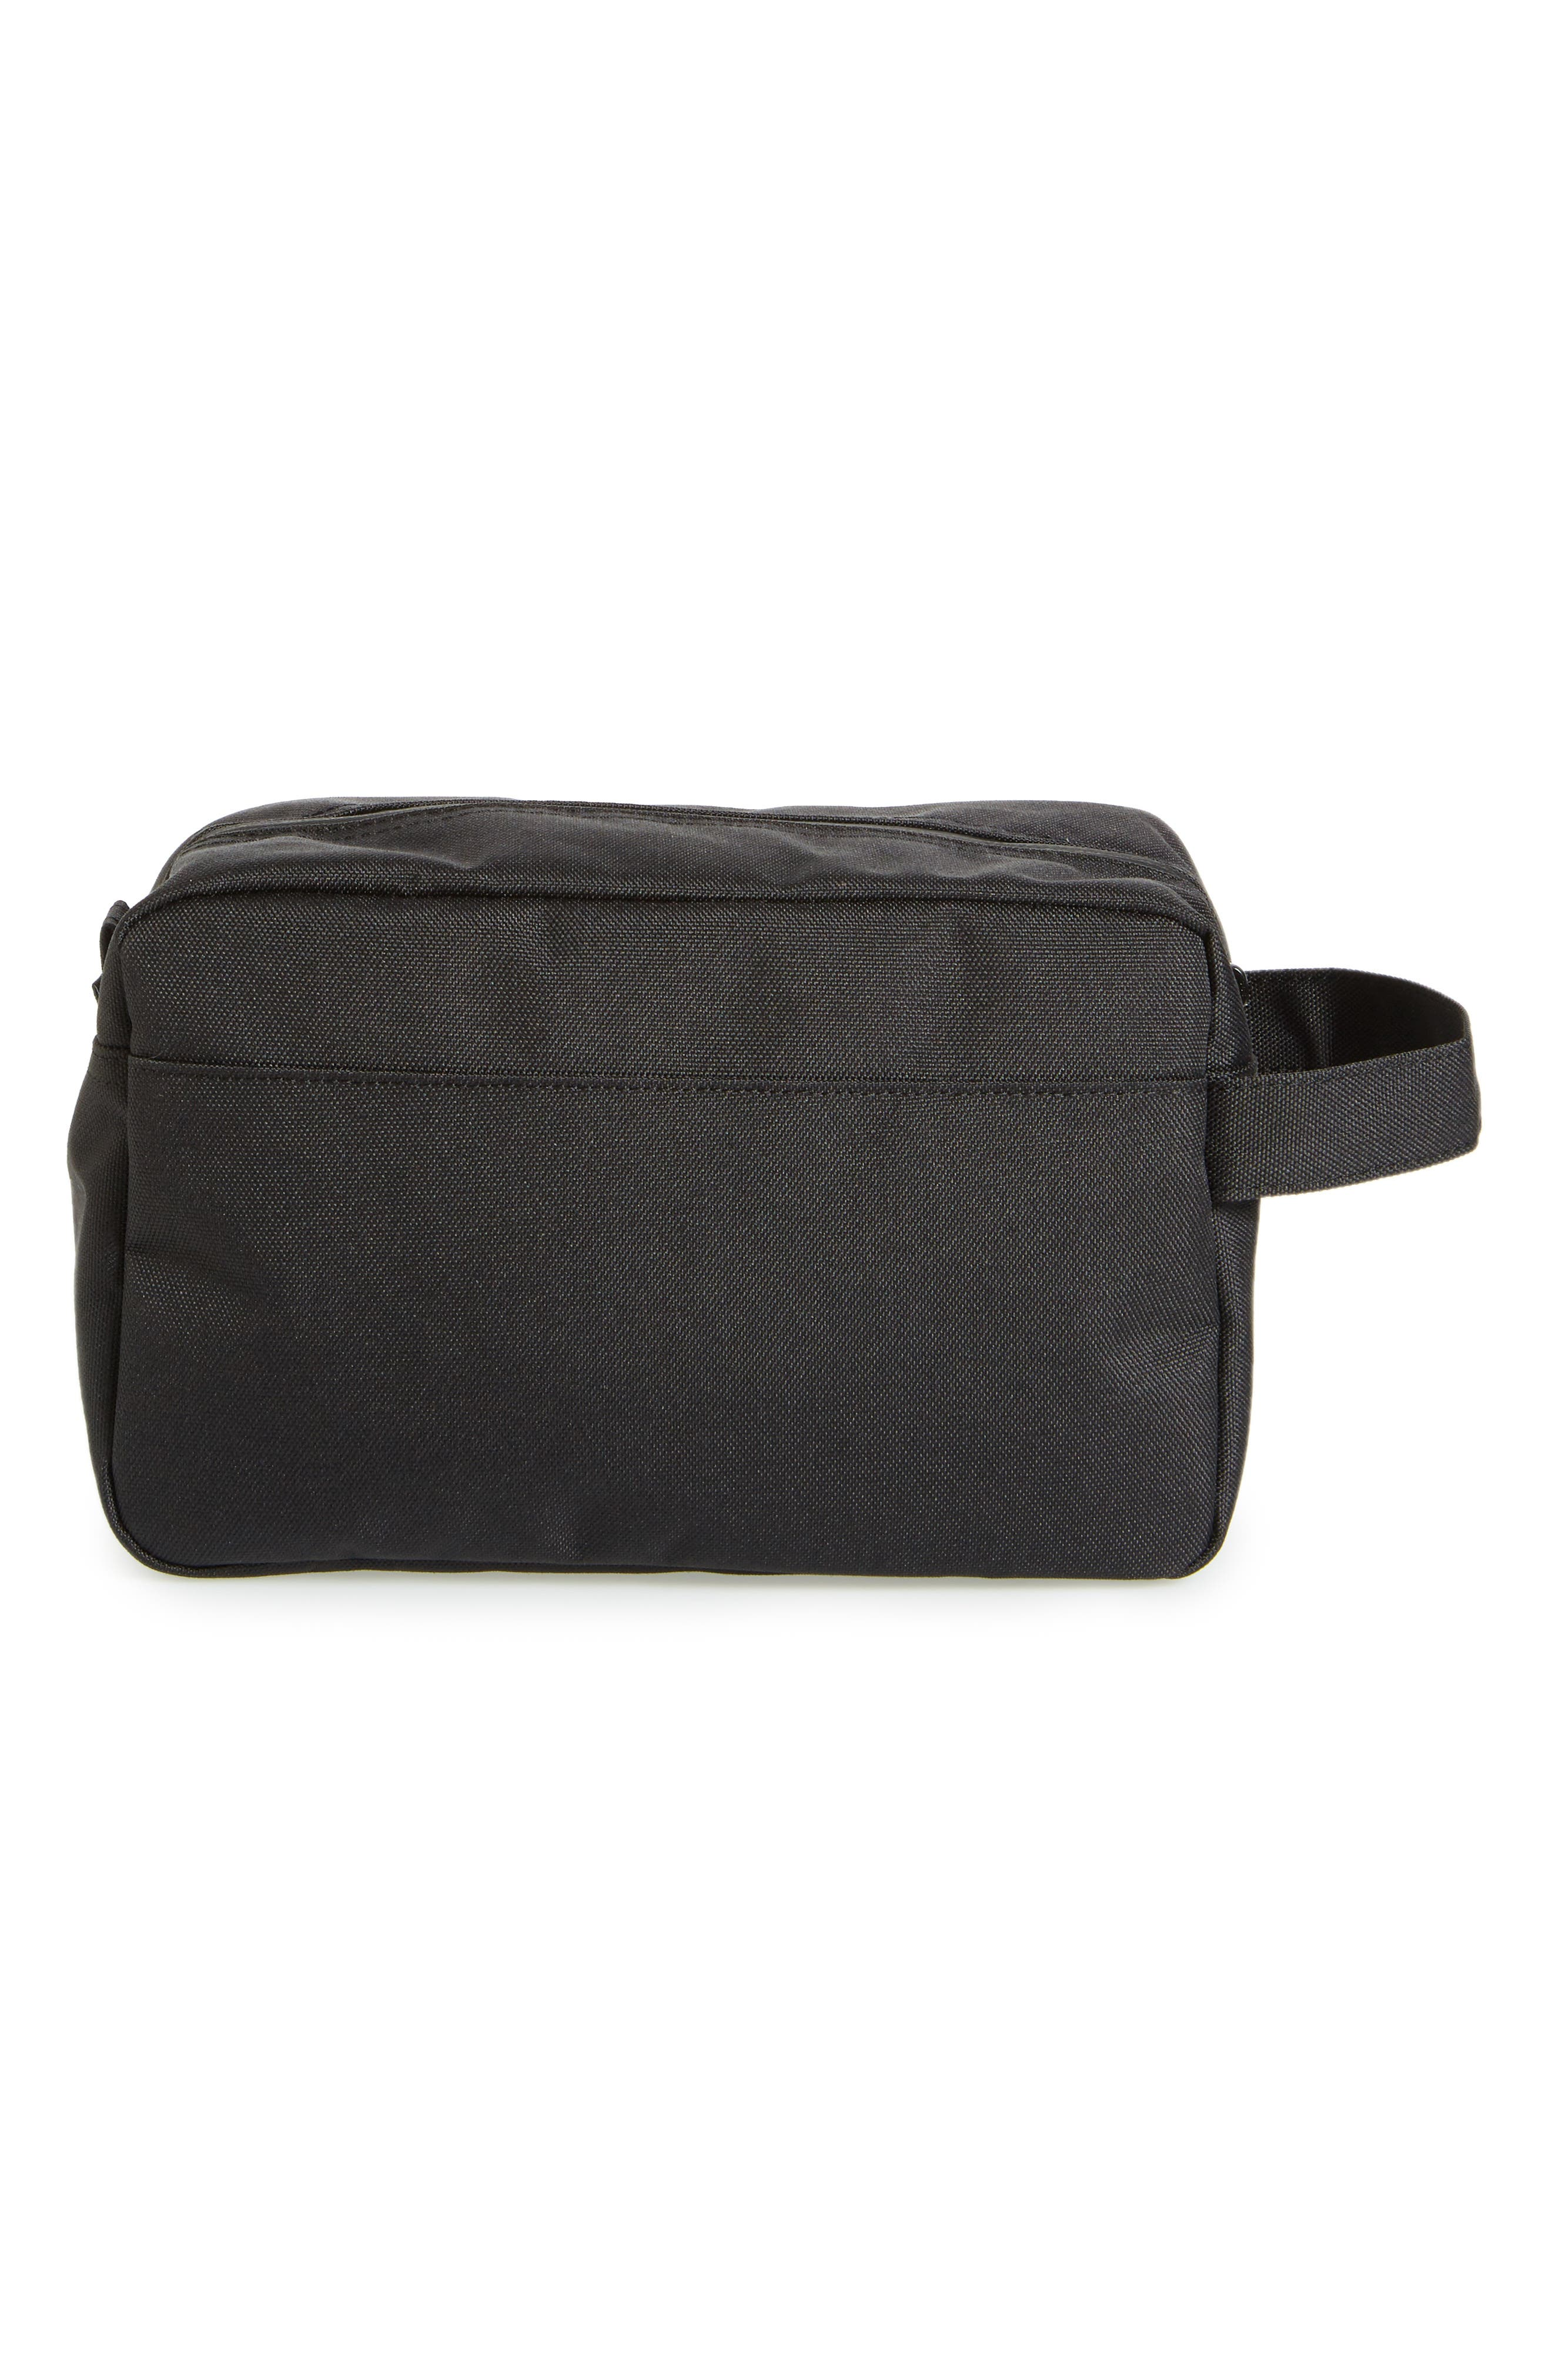 Chapter Toiletry Case,                             Alternate thumbnail 2, color,                             BLACK